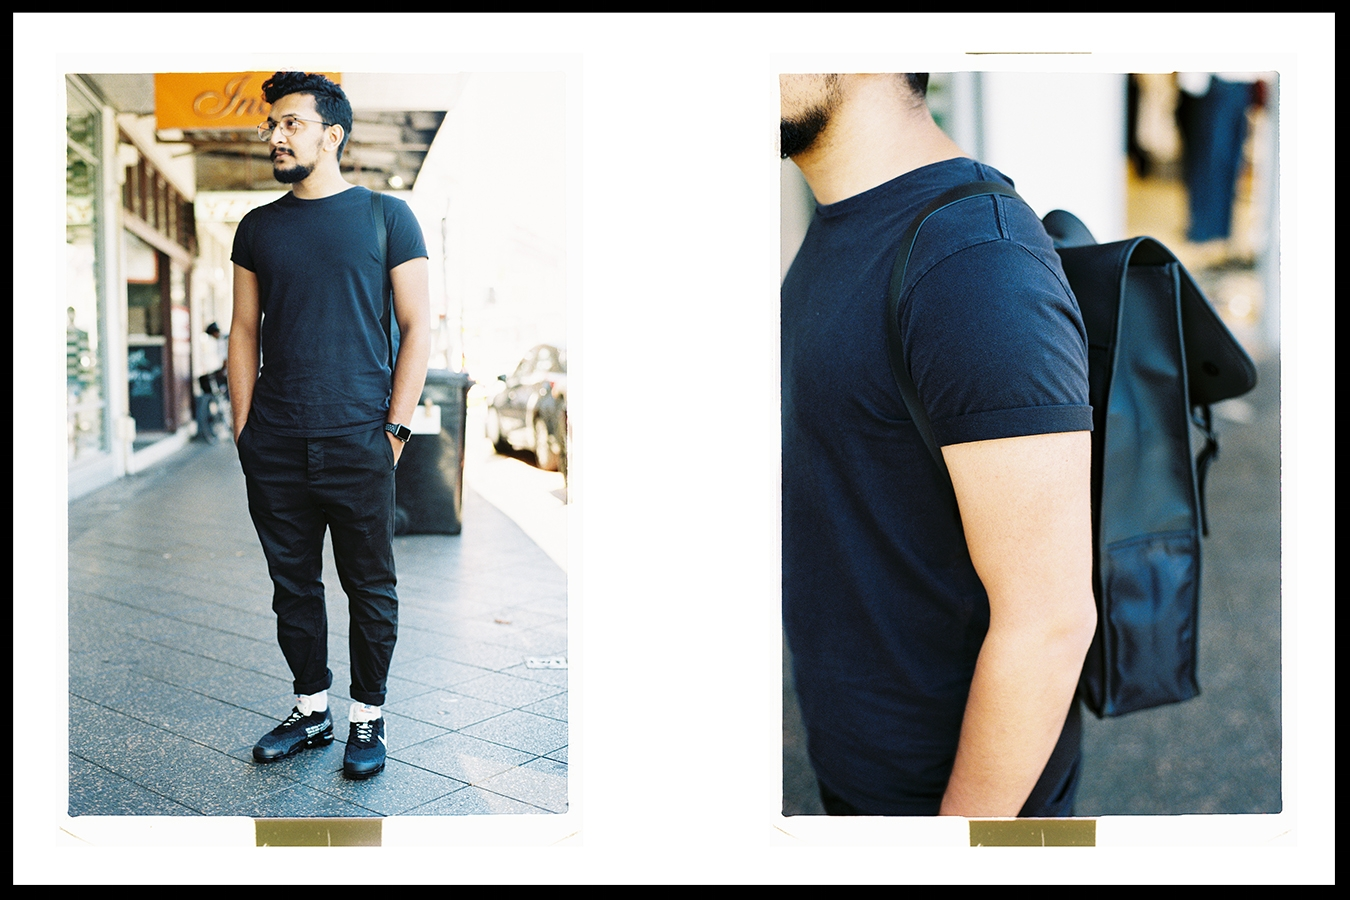 Meet Avinesh @avi_brownman // Nikon F3 - Fuji Industrial 100 film